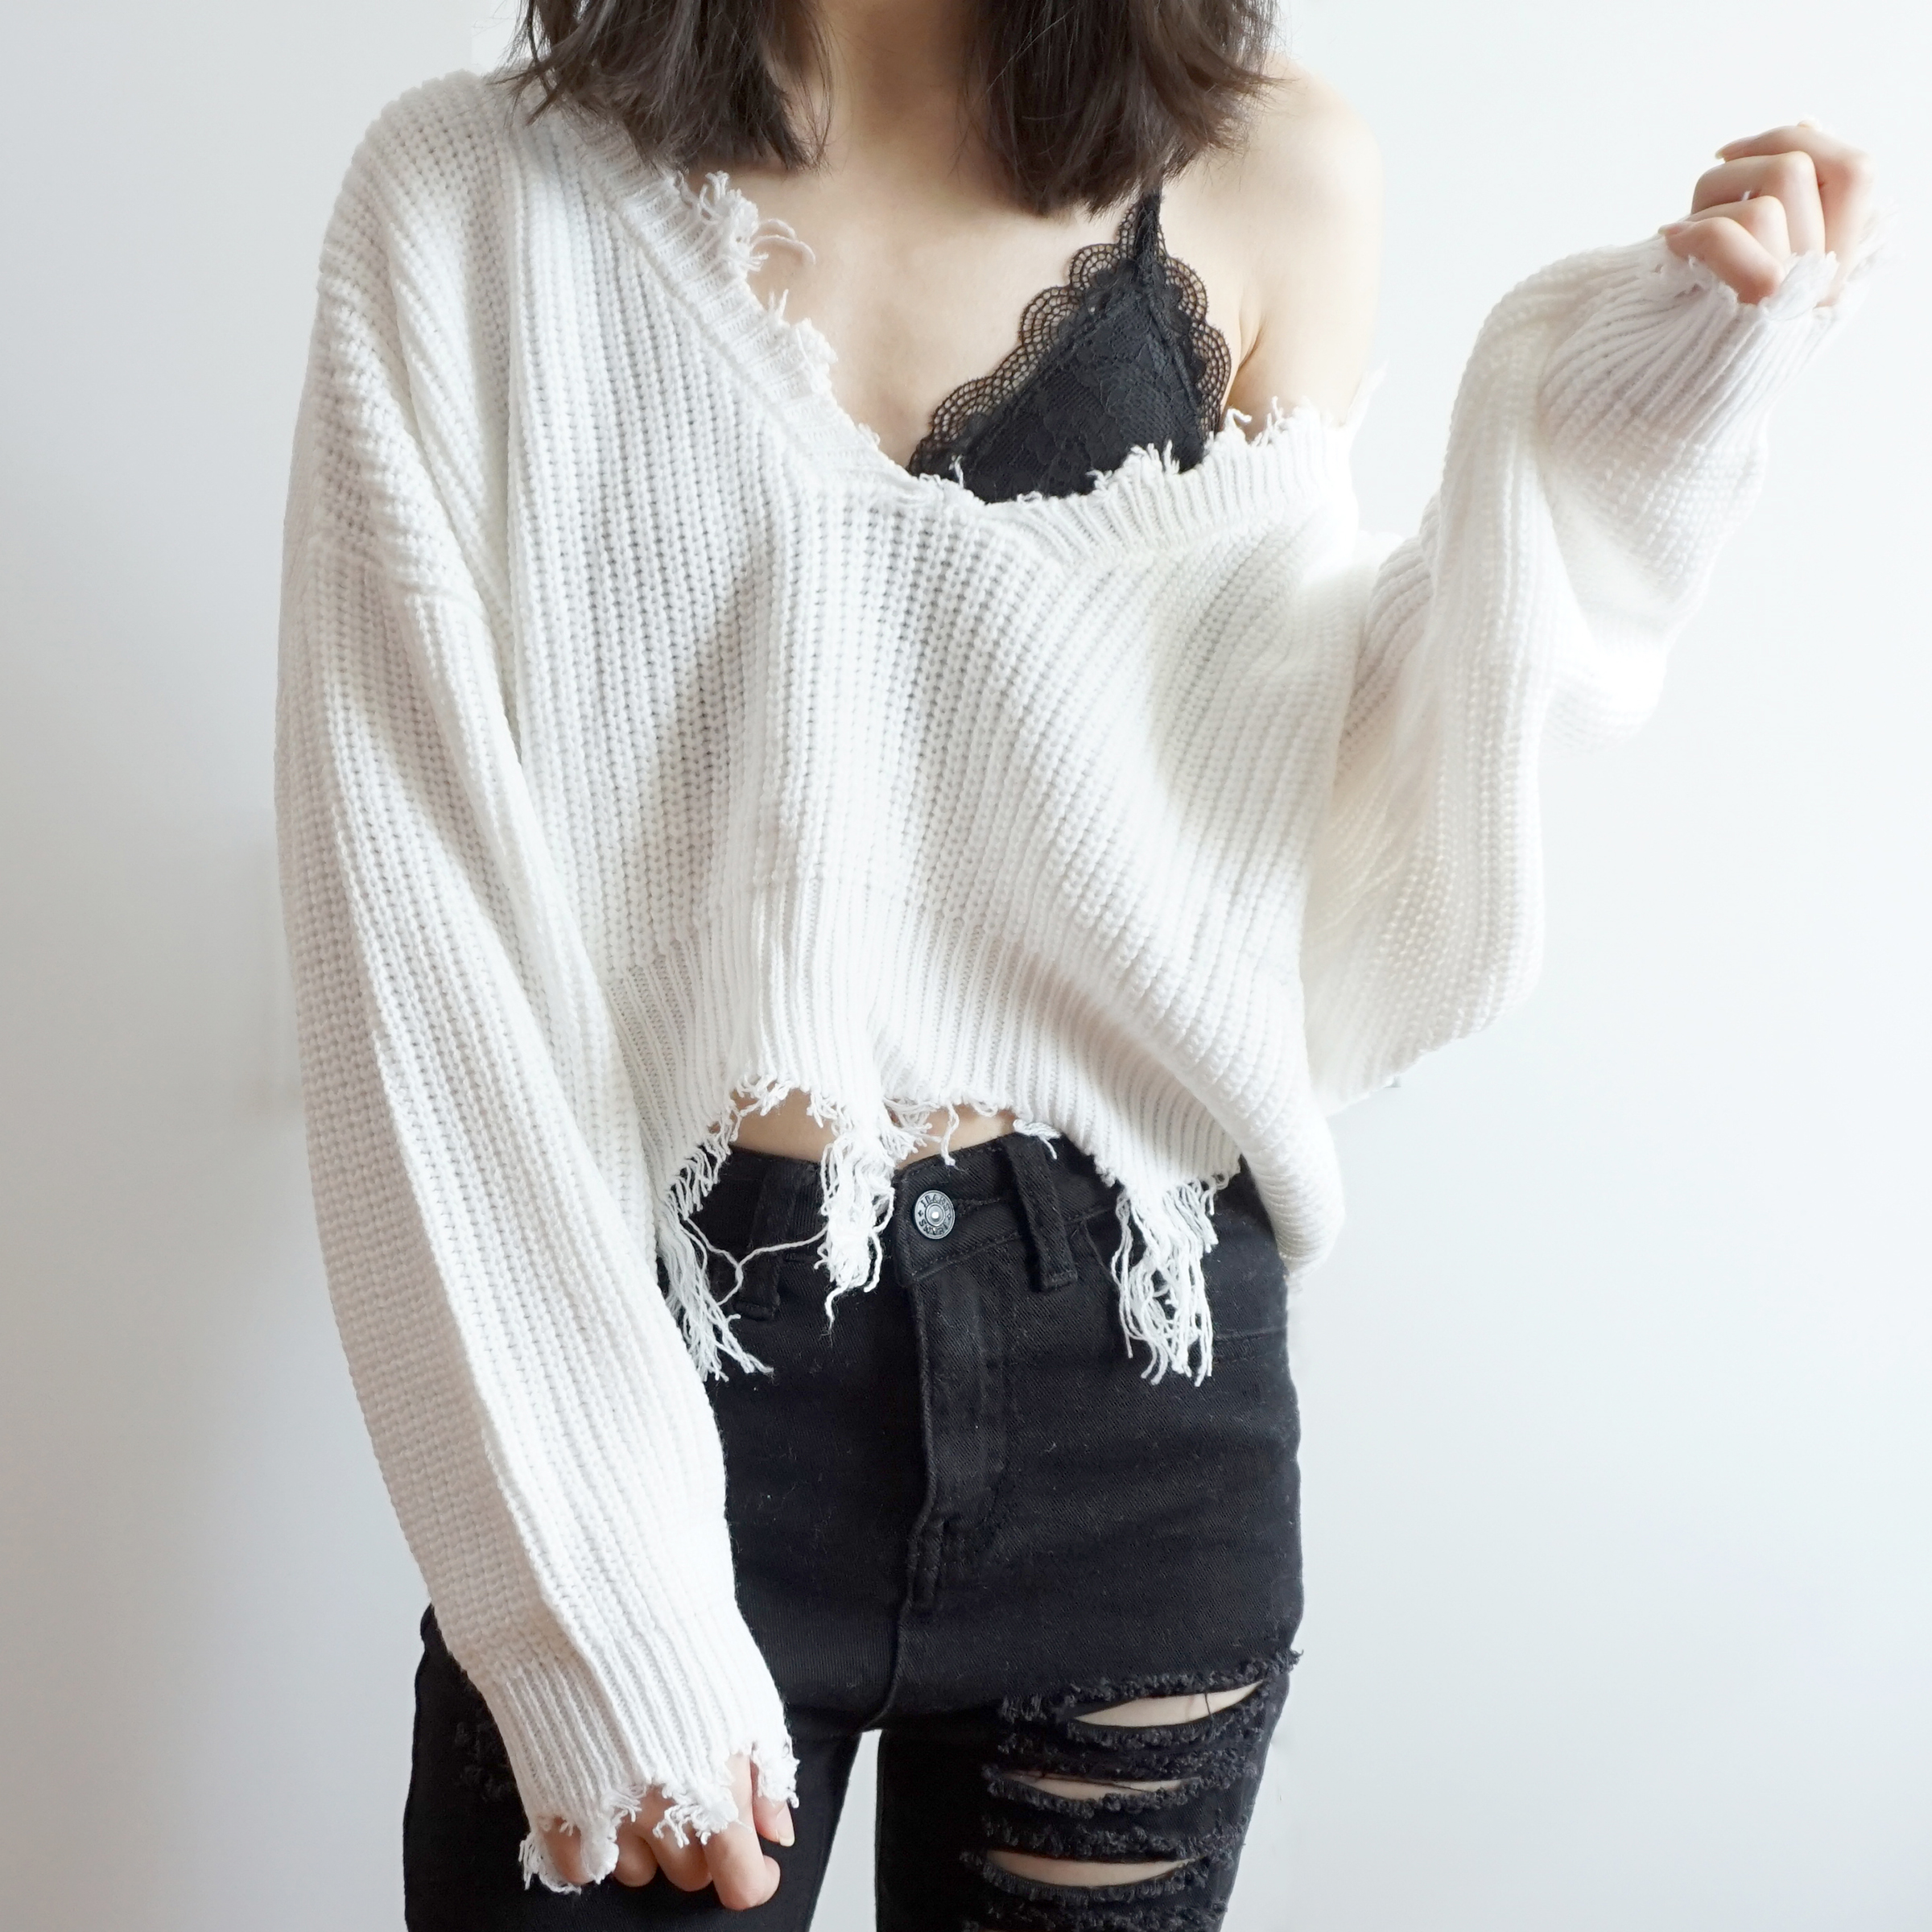 387daac8b73 Distressed V-Neck Cropped Sweater (2 Colors) · Megoosta Fashion ...